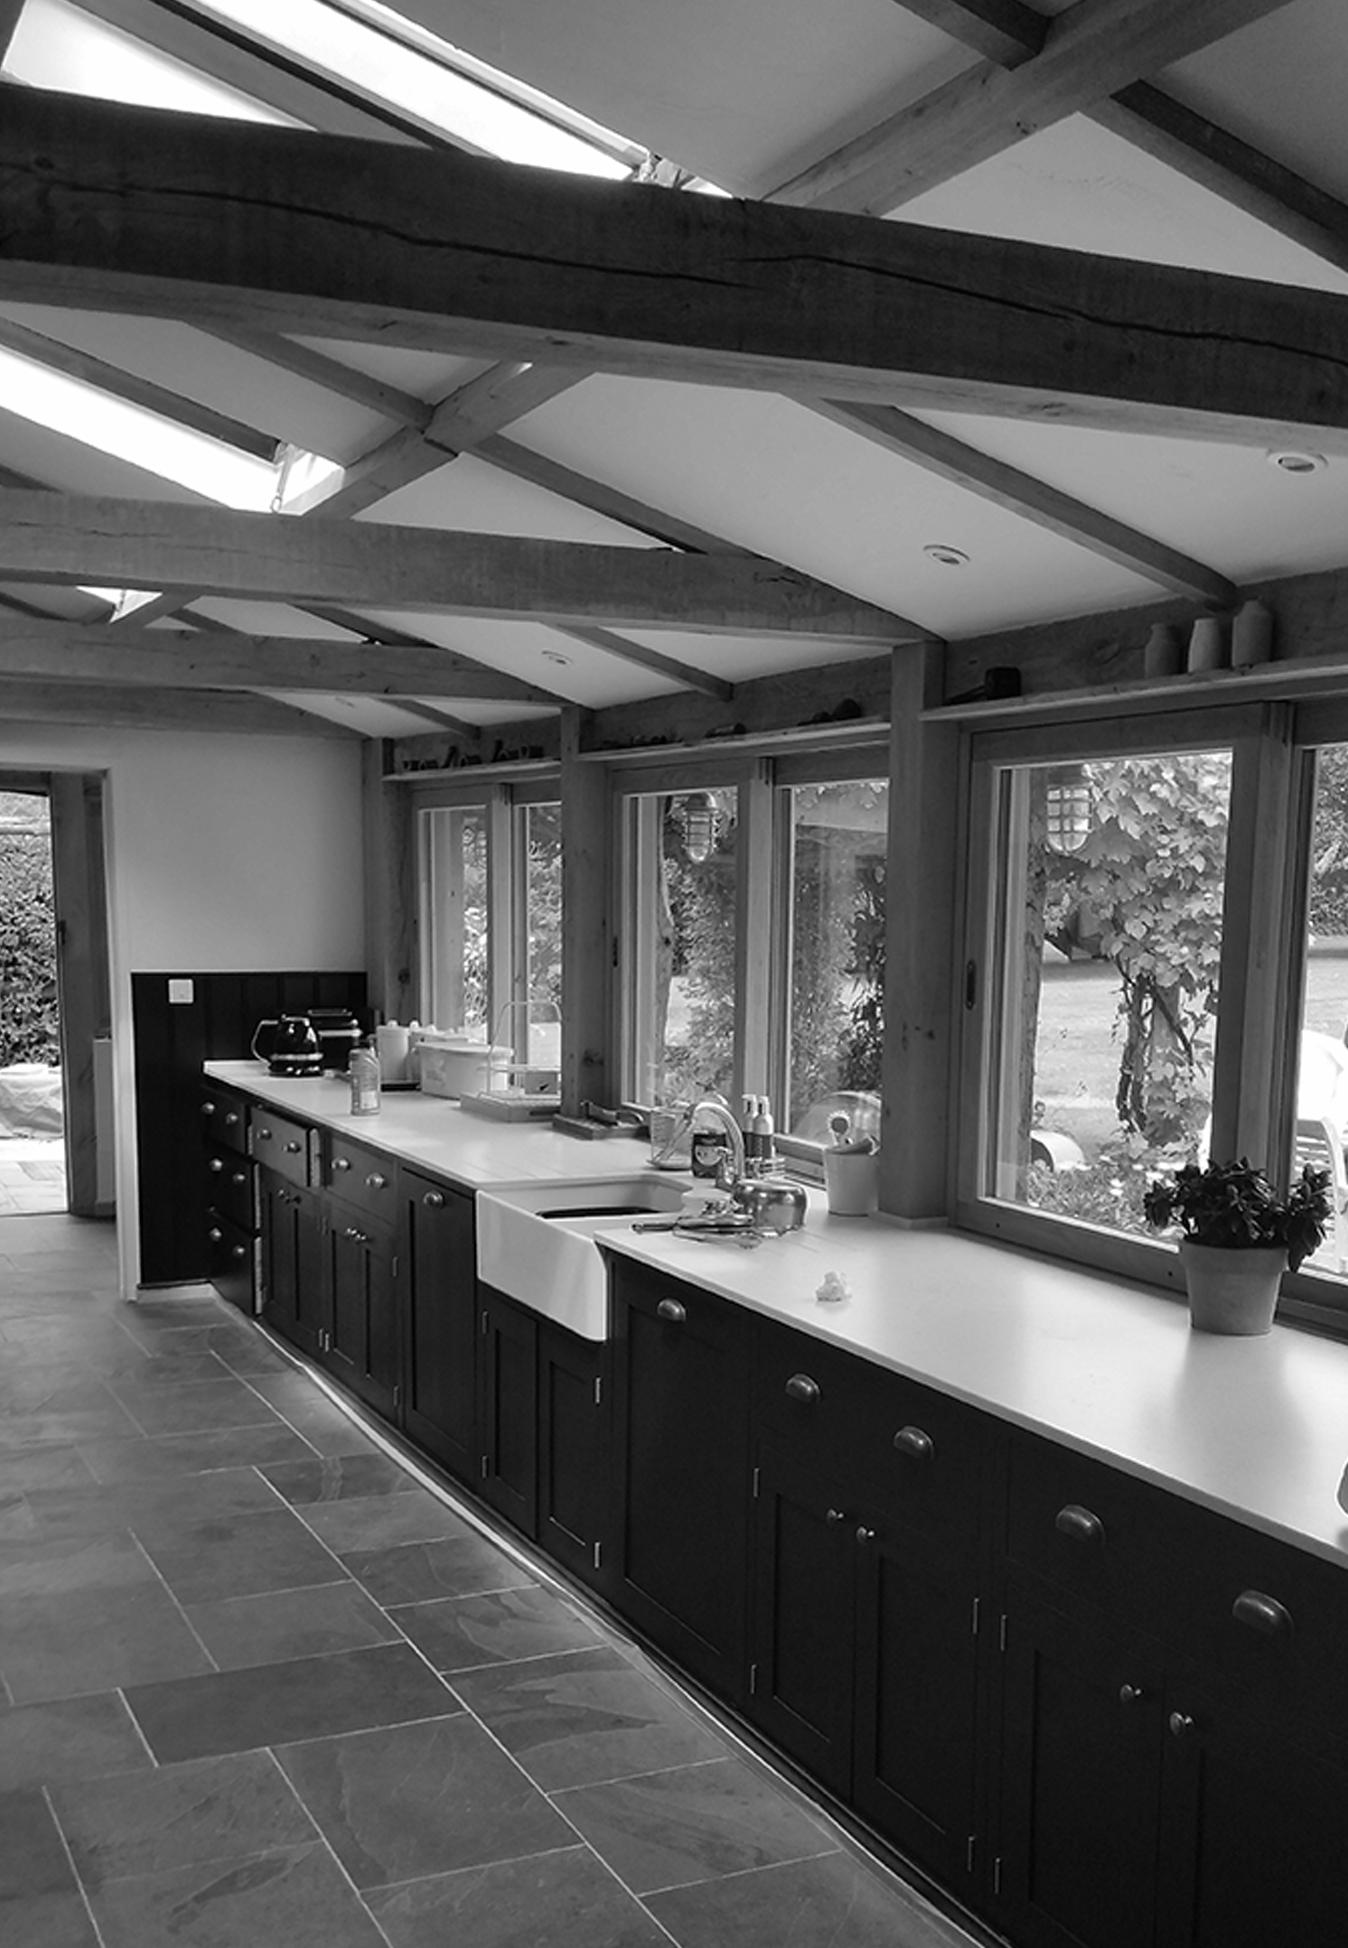 Oak frame kitchen interior